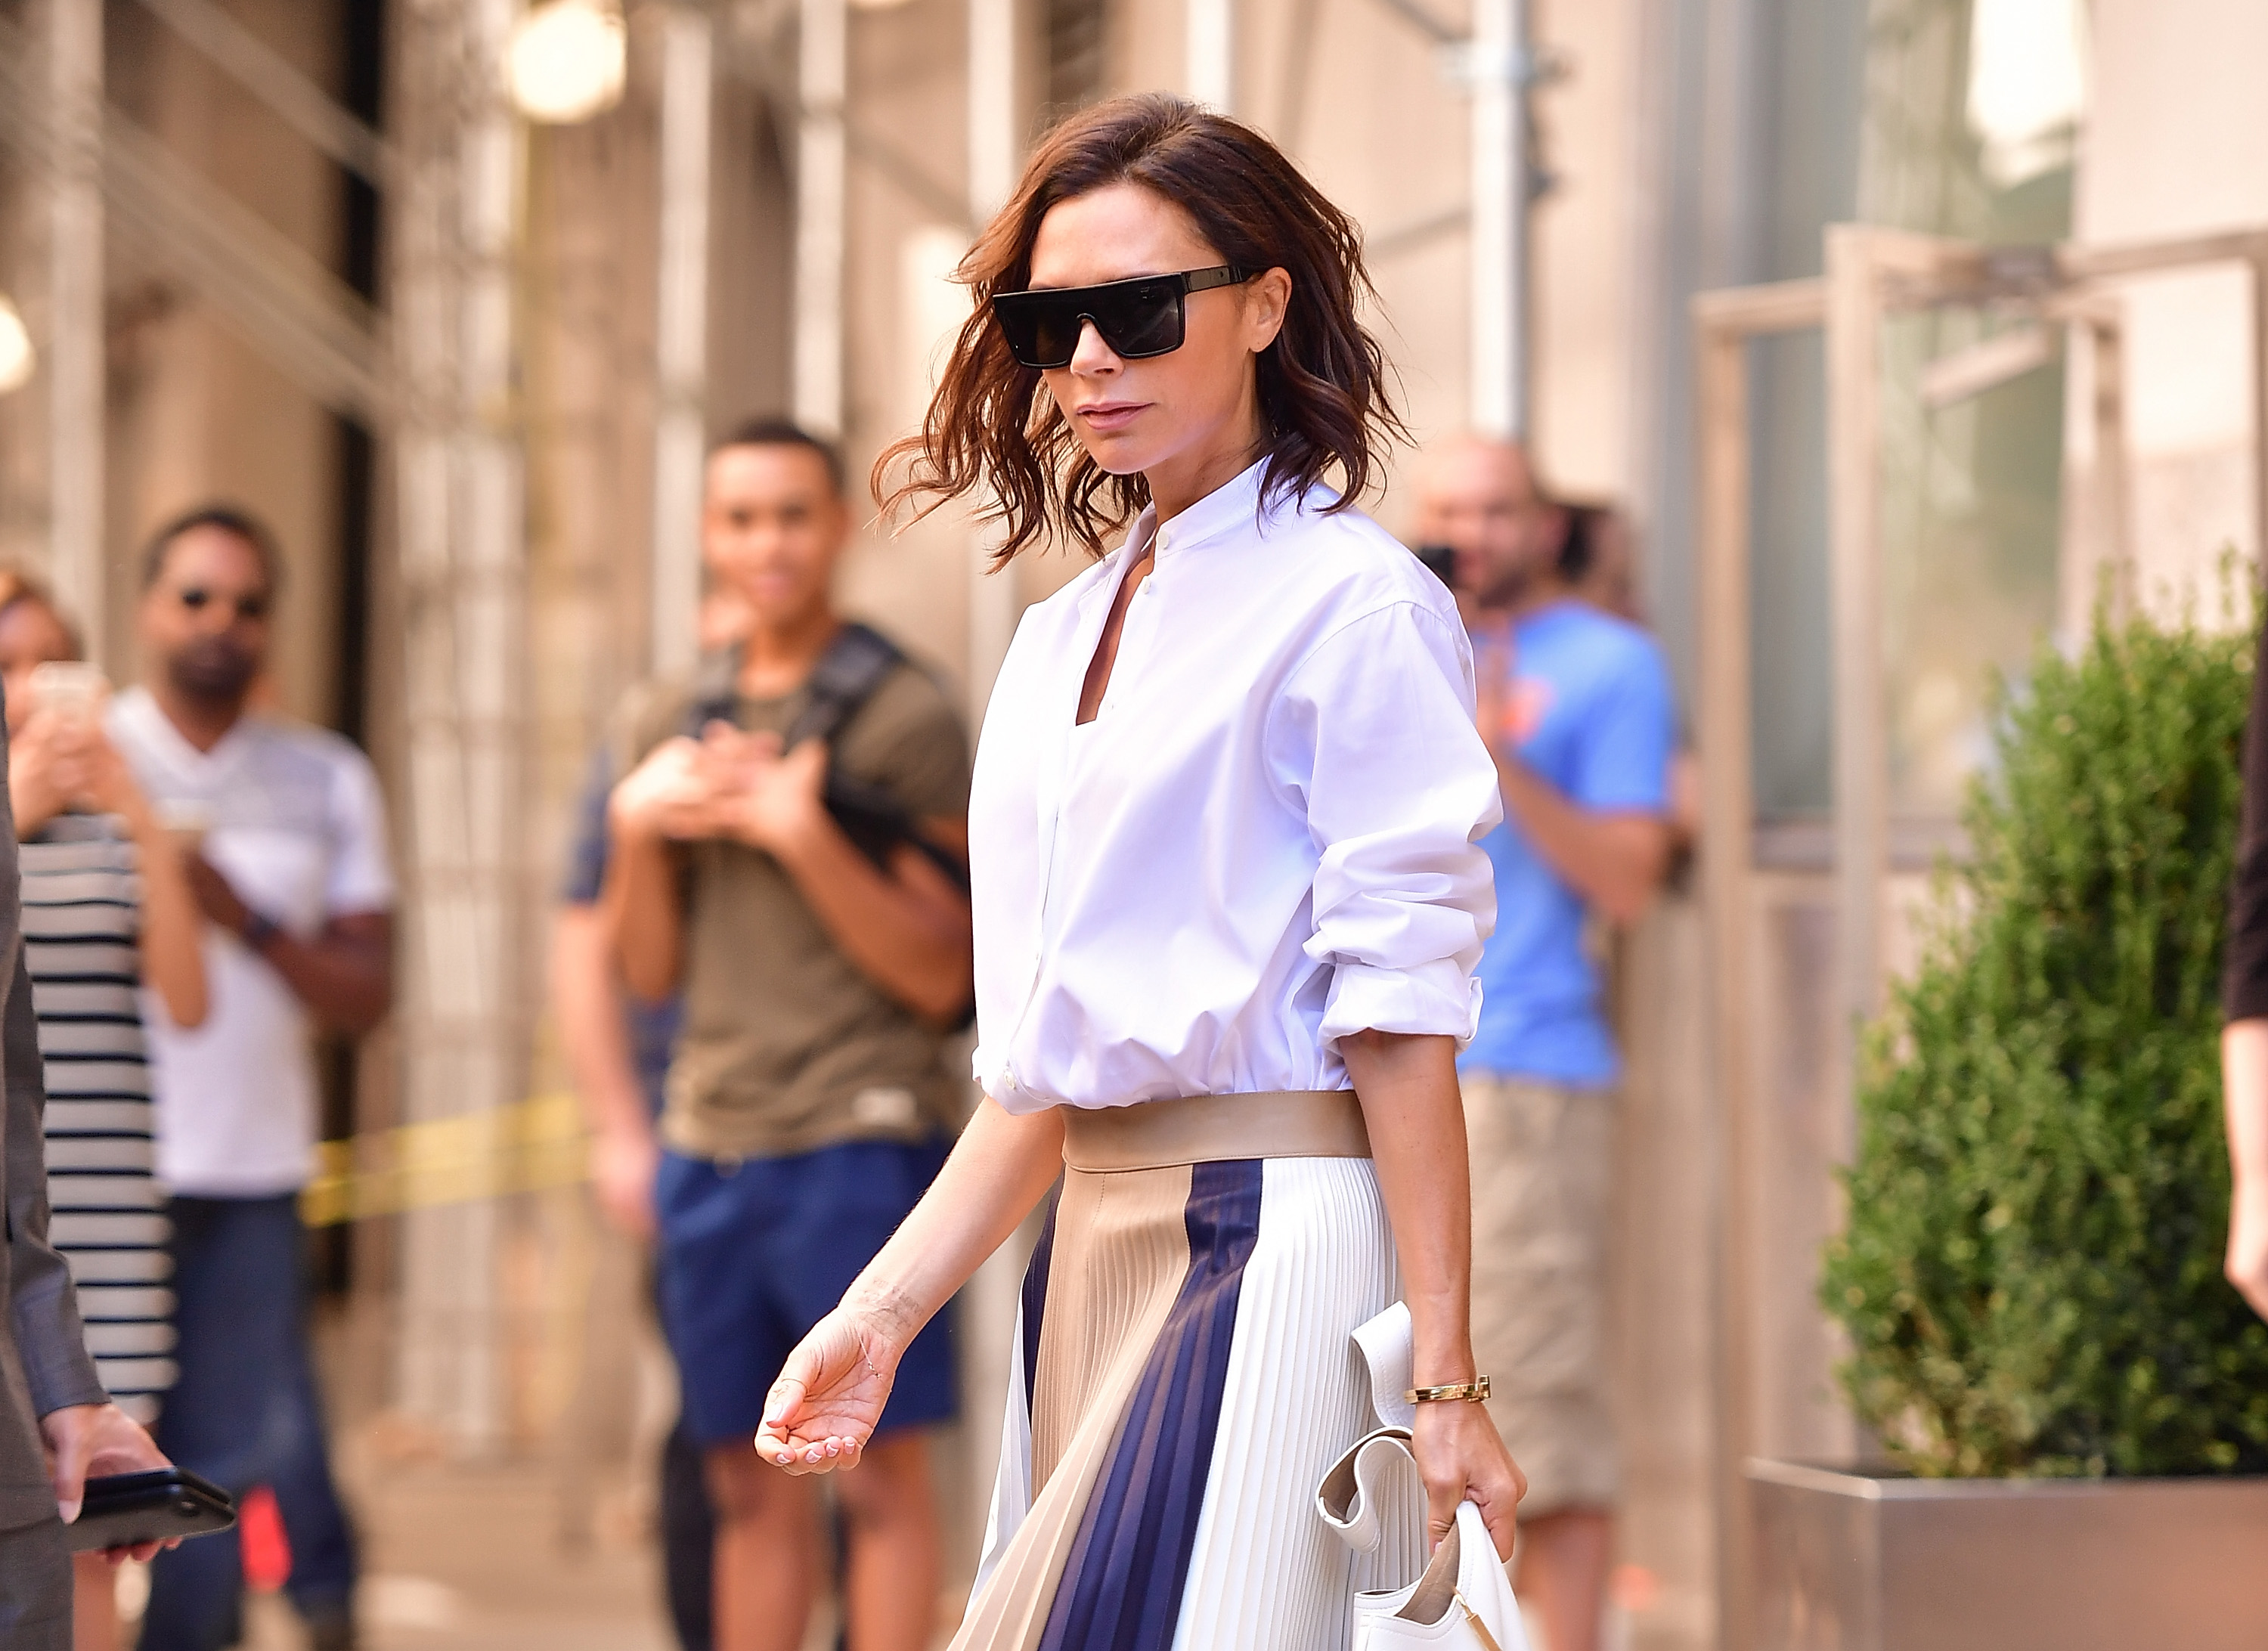 Victoria Beckham - a study in style. Image: Getty.